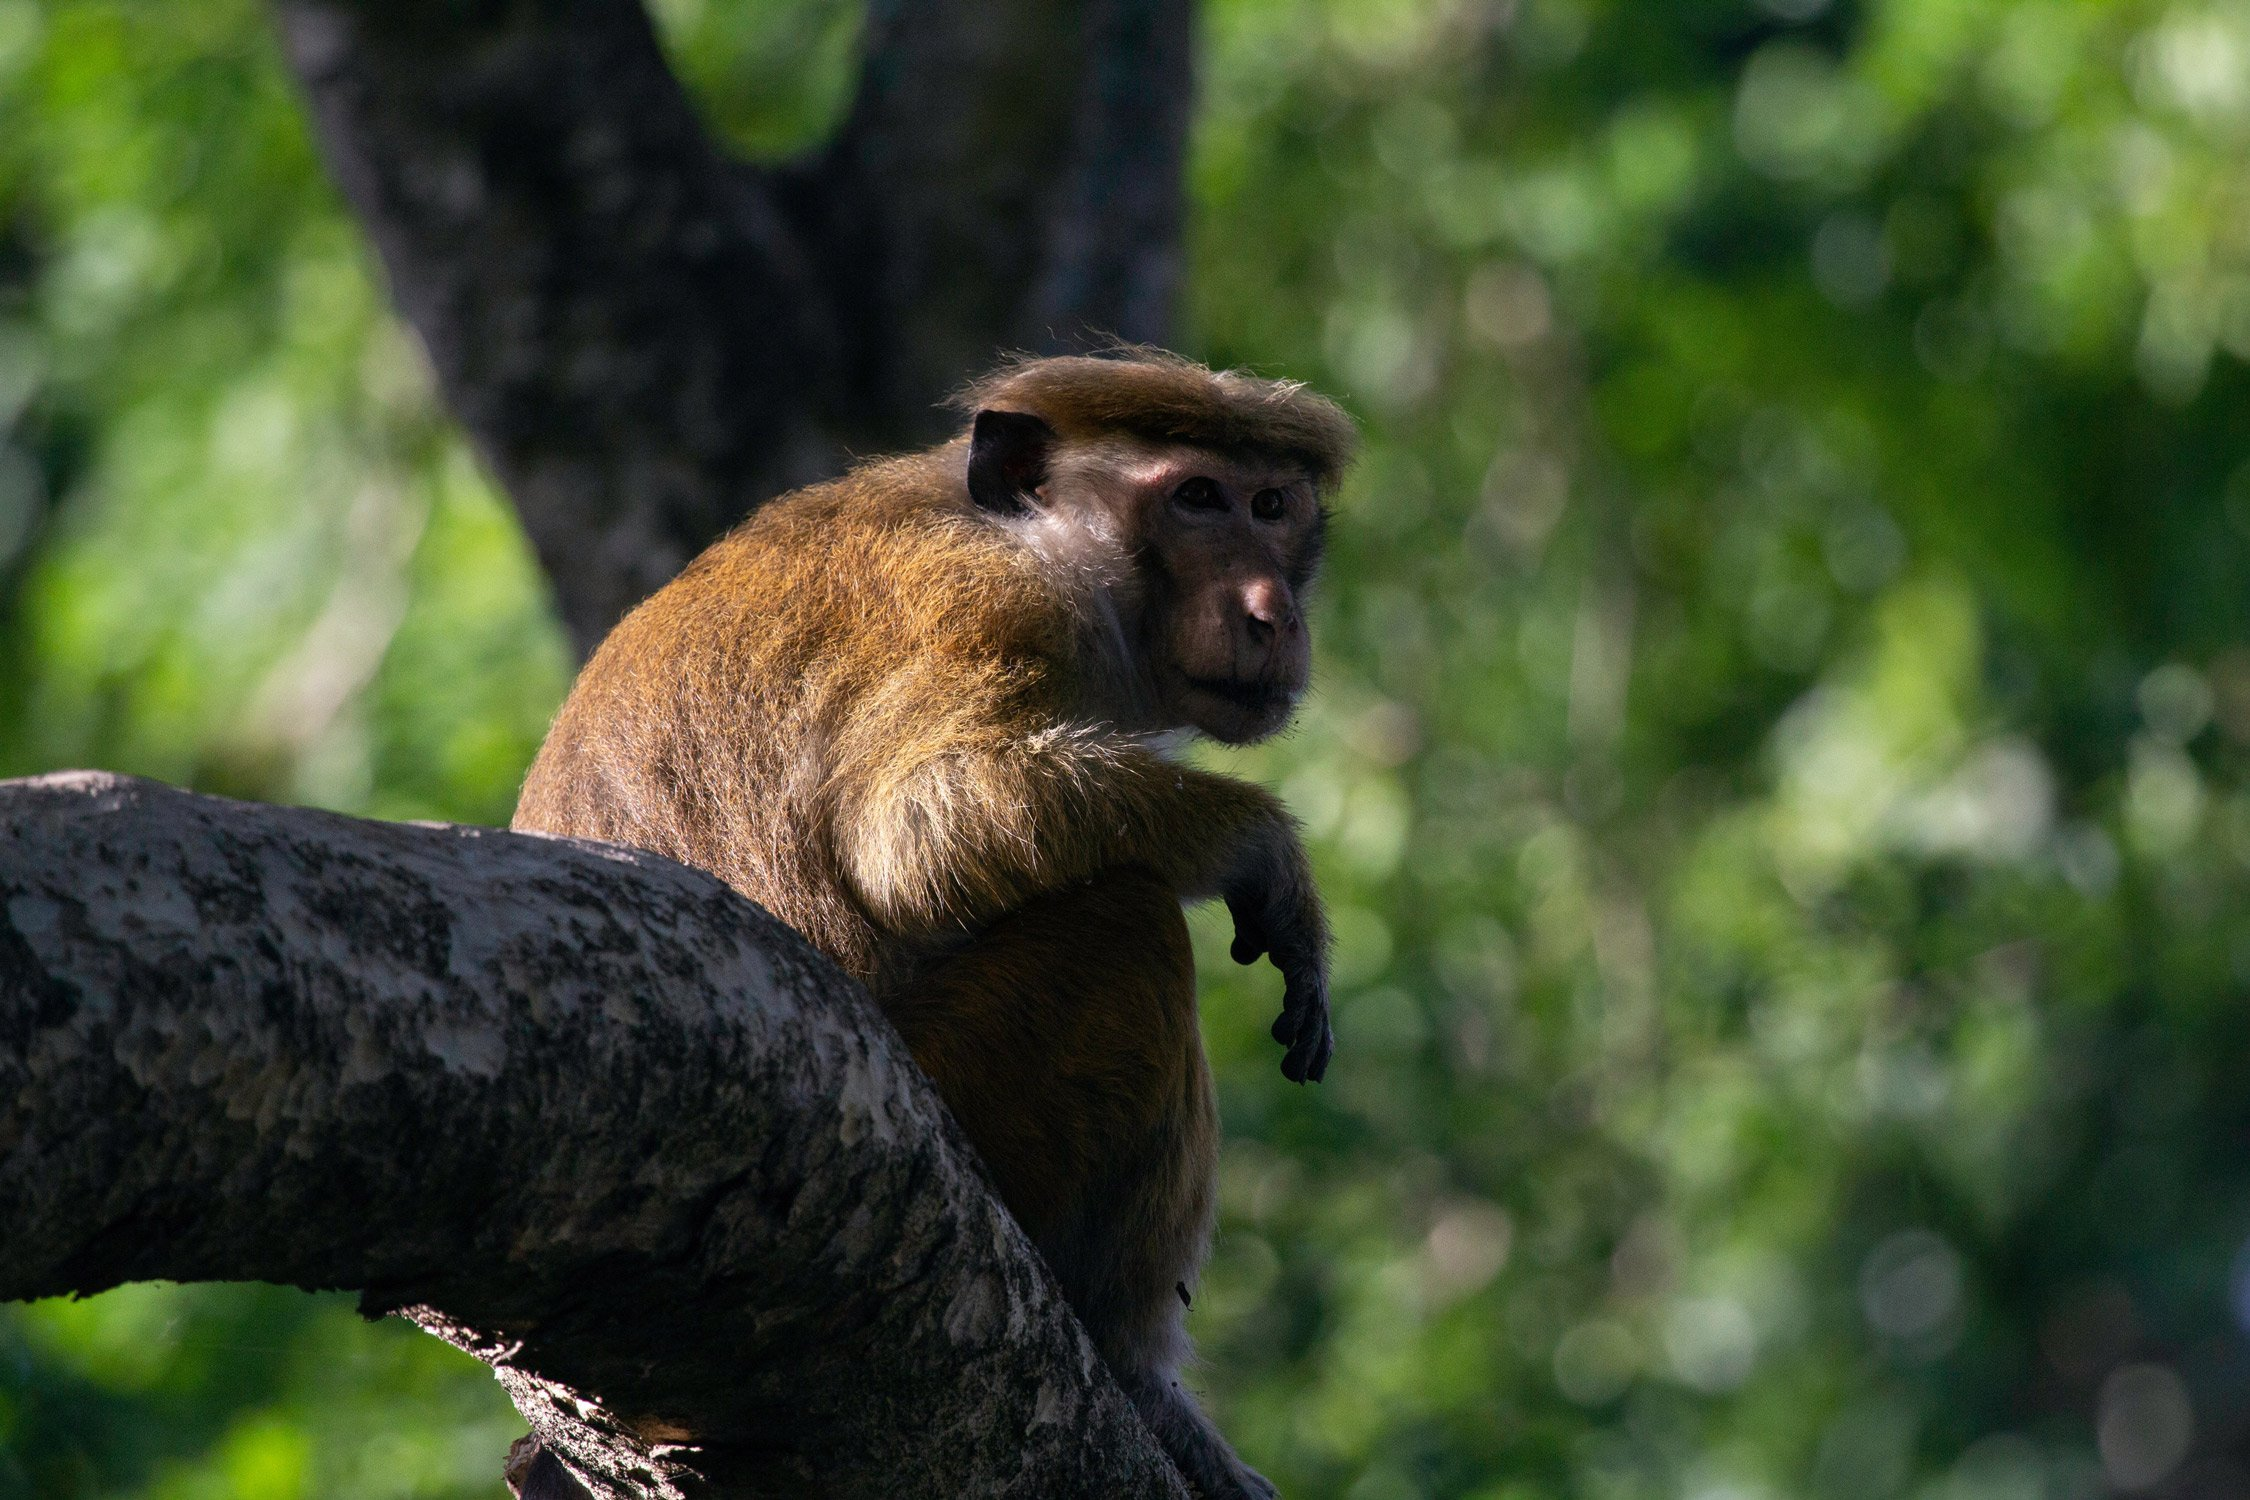 macaques monkey in a tree in Azrou Forest